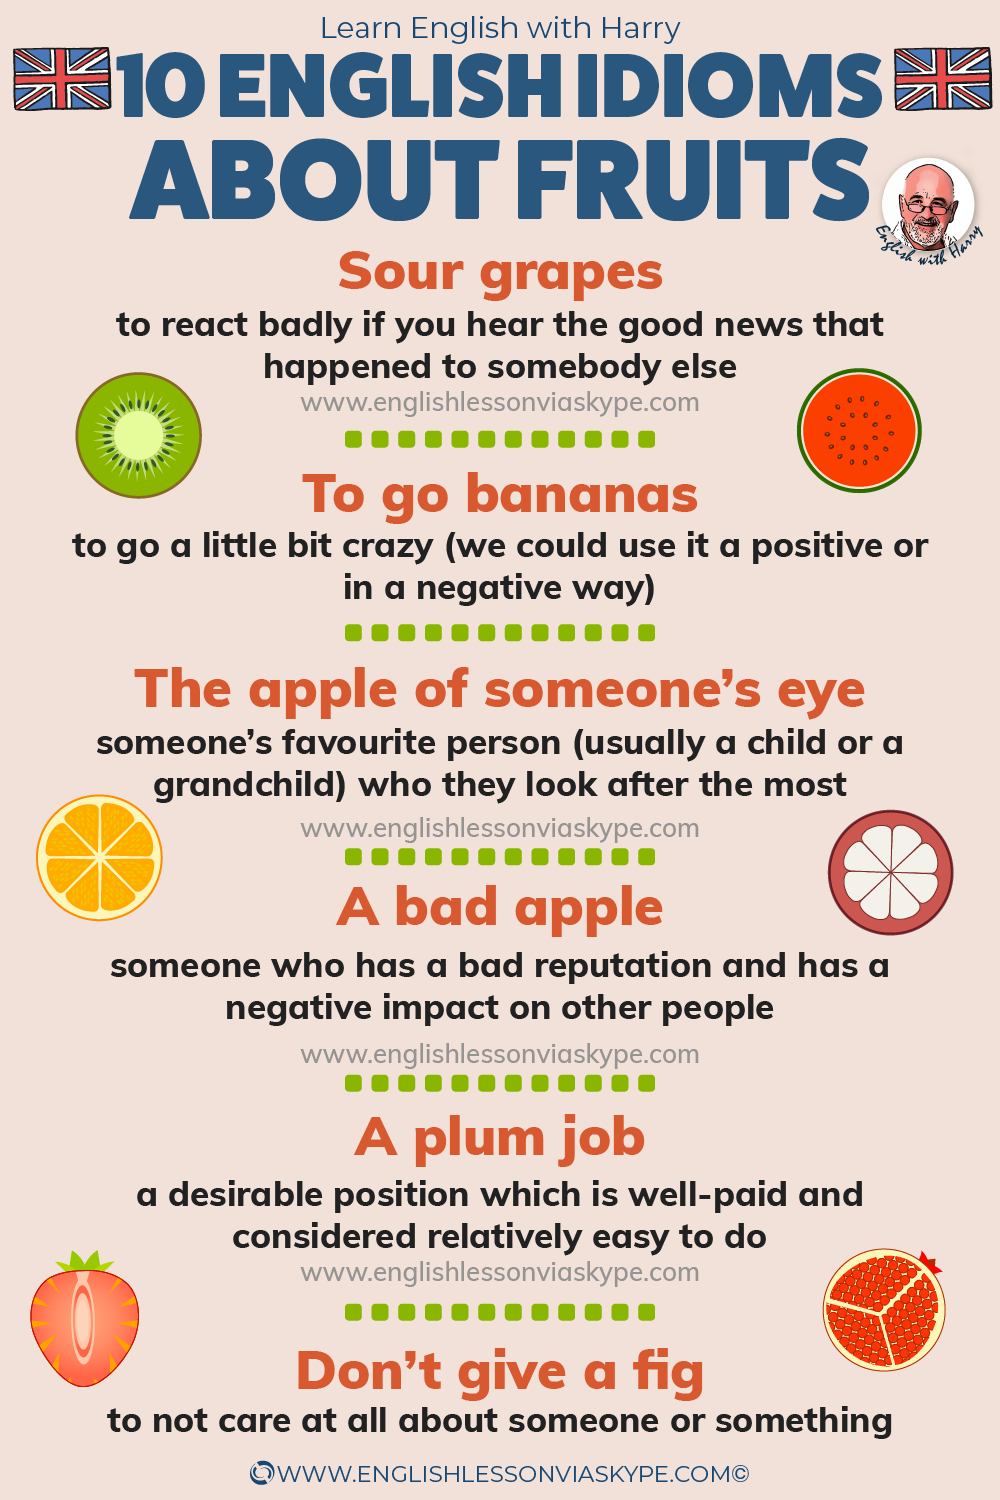 Common idioms about fruits in English. Advanced English learning with #learnenglish #englishlessons #EnglishTeacher #vocabulary #ingles #อังกฤษ #английский #aprenderingles #english #cursodeingles #учианглийский #vocabulário #dicasdeingles #learningenglish #ingilizce #englishgrammar #englishvocabulary #ielts #idiomas